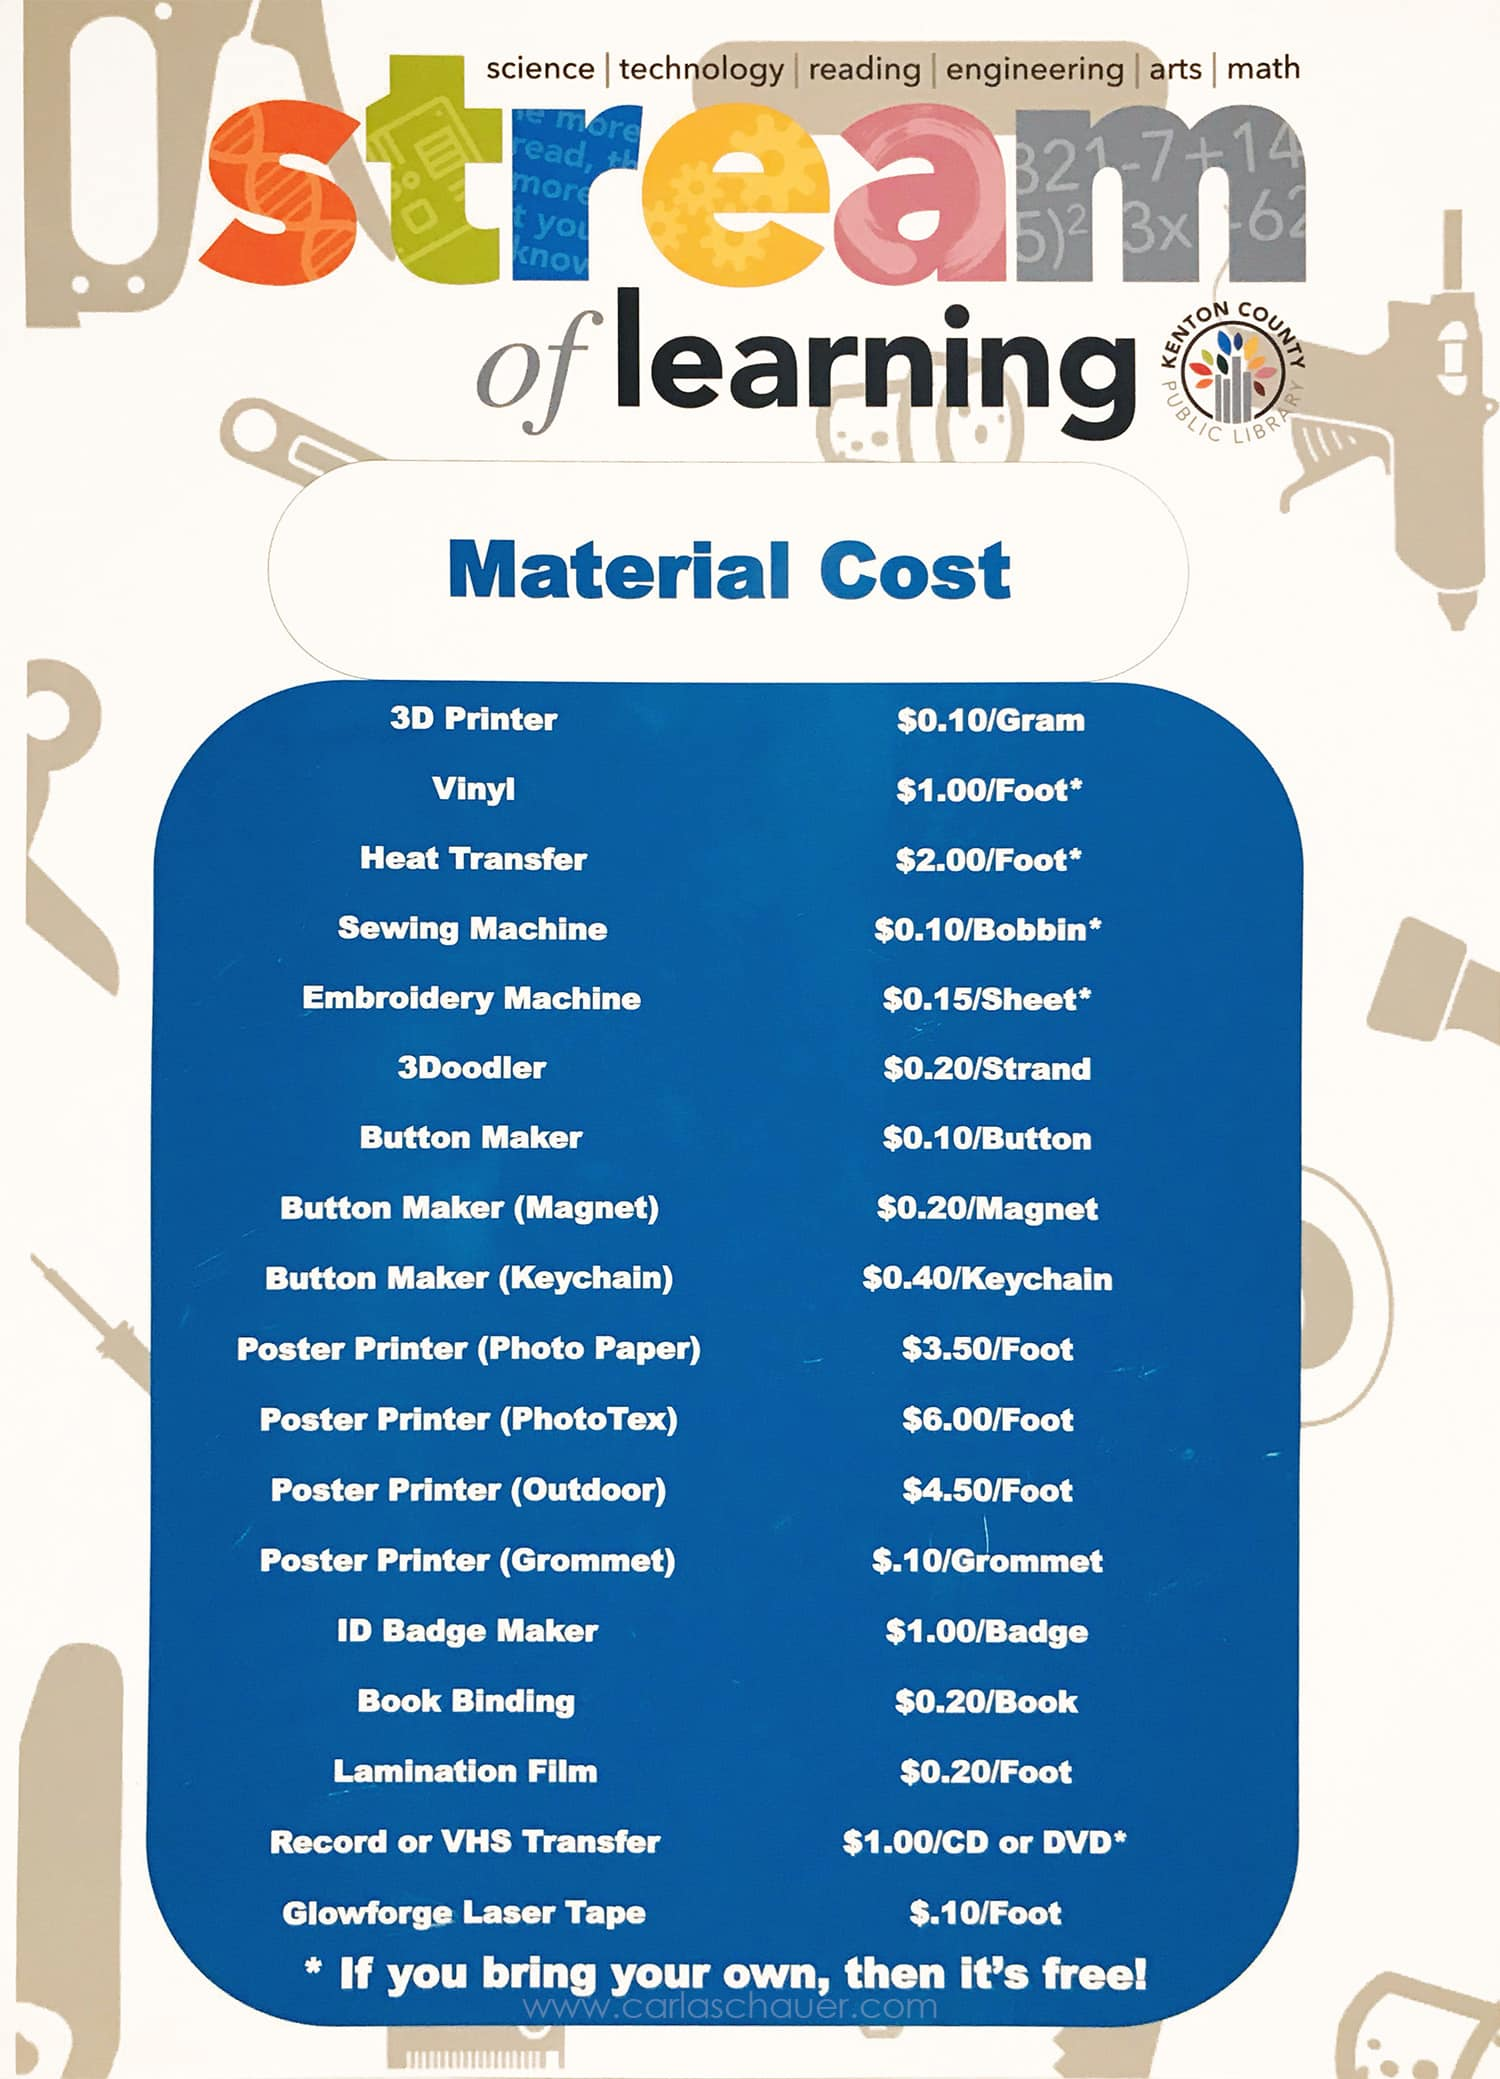 Library makerspaces are low or even no cost if you bring your own materials, or you can purchase materials there.Materials costs for Kenton County Library Stream Center Makerspace